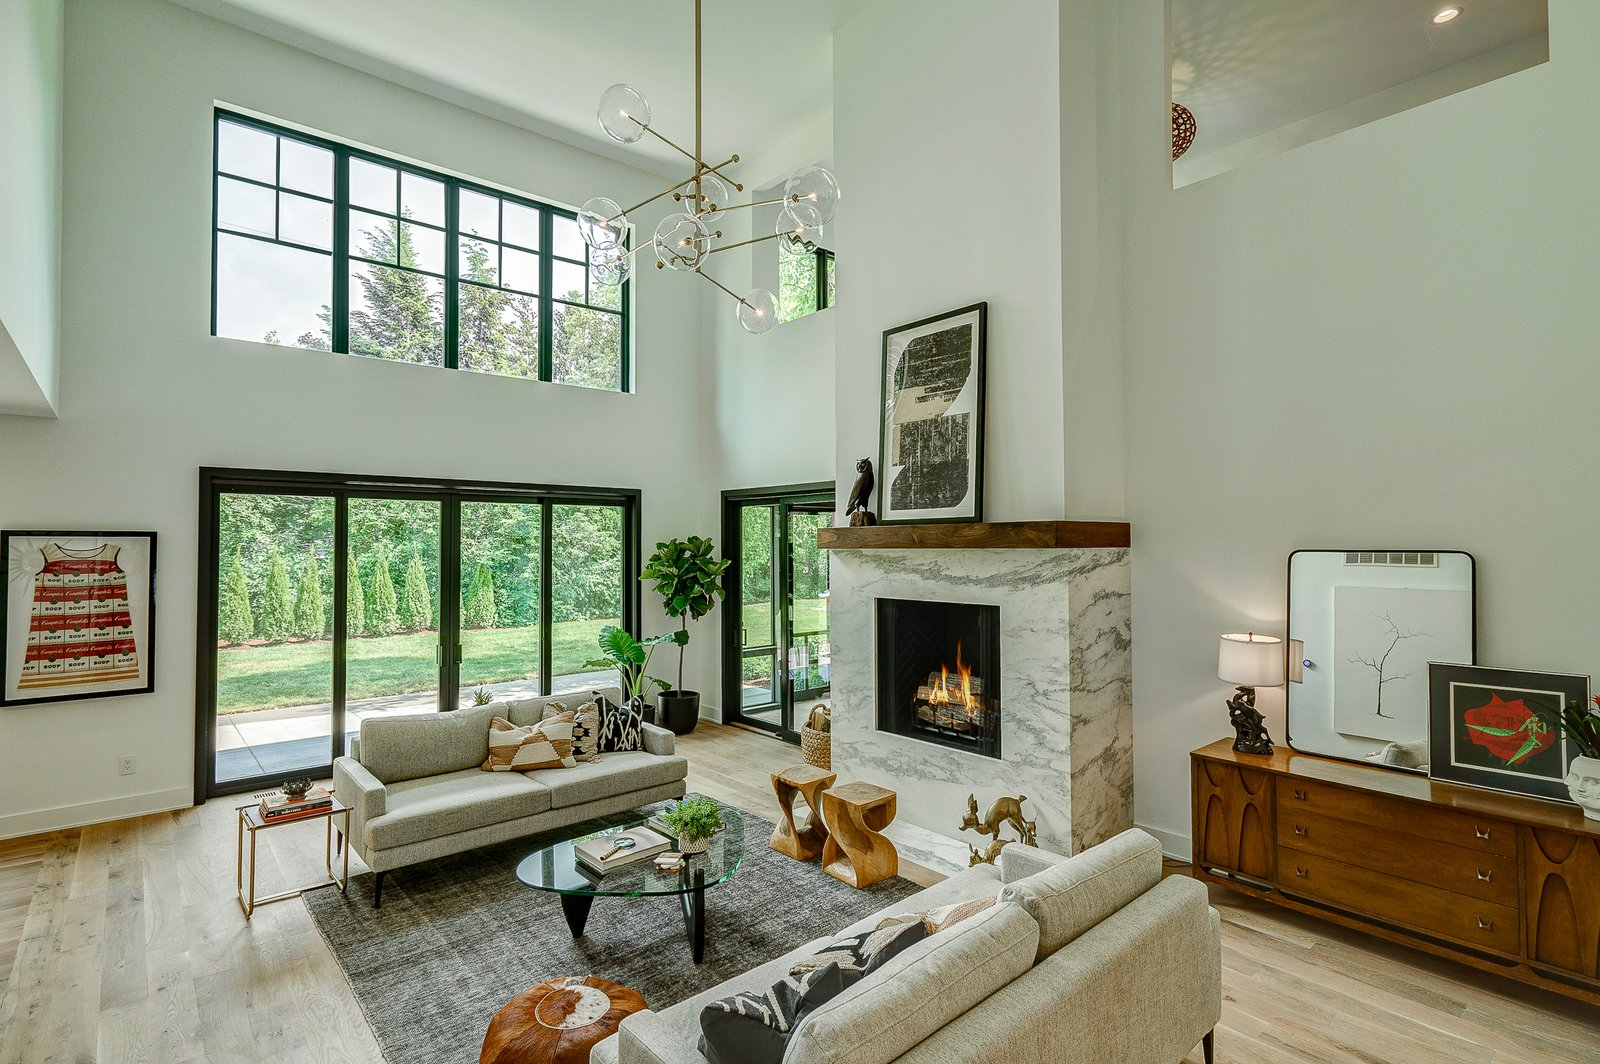 Living Room, Lamps, Stools, Accent Lighting, Coffee Tables, Sofa, Ceiling Lighting, Table Lighting, End Tables, Standard Layout Fireplace, Ottomans, Light Hardwood Floor, Gas Burning Fireplace, and Console Tables Dorchester Interior Great Room  The Dorchester Project by  Paul + Jo Studio